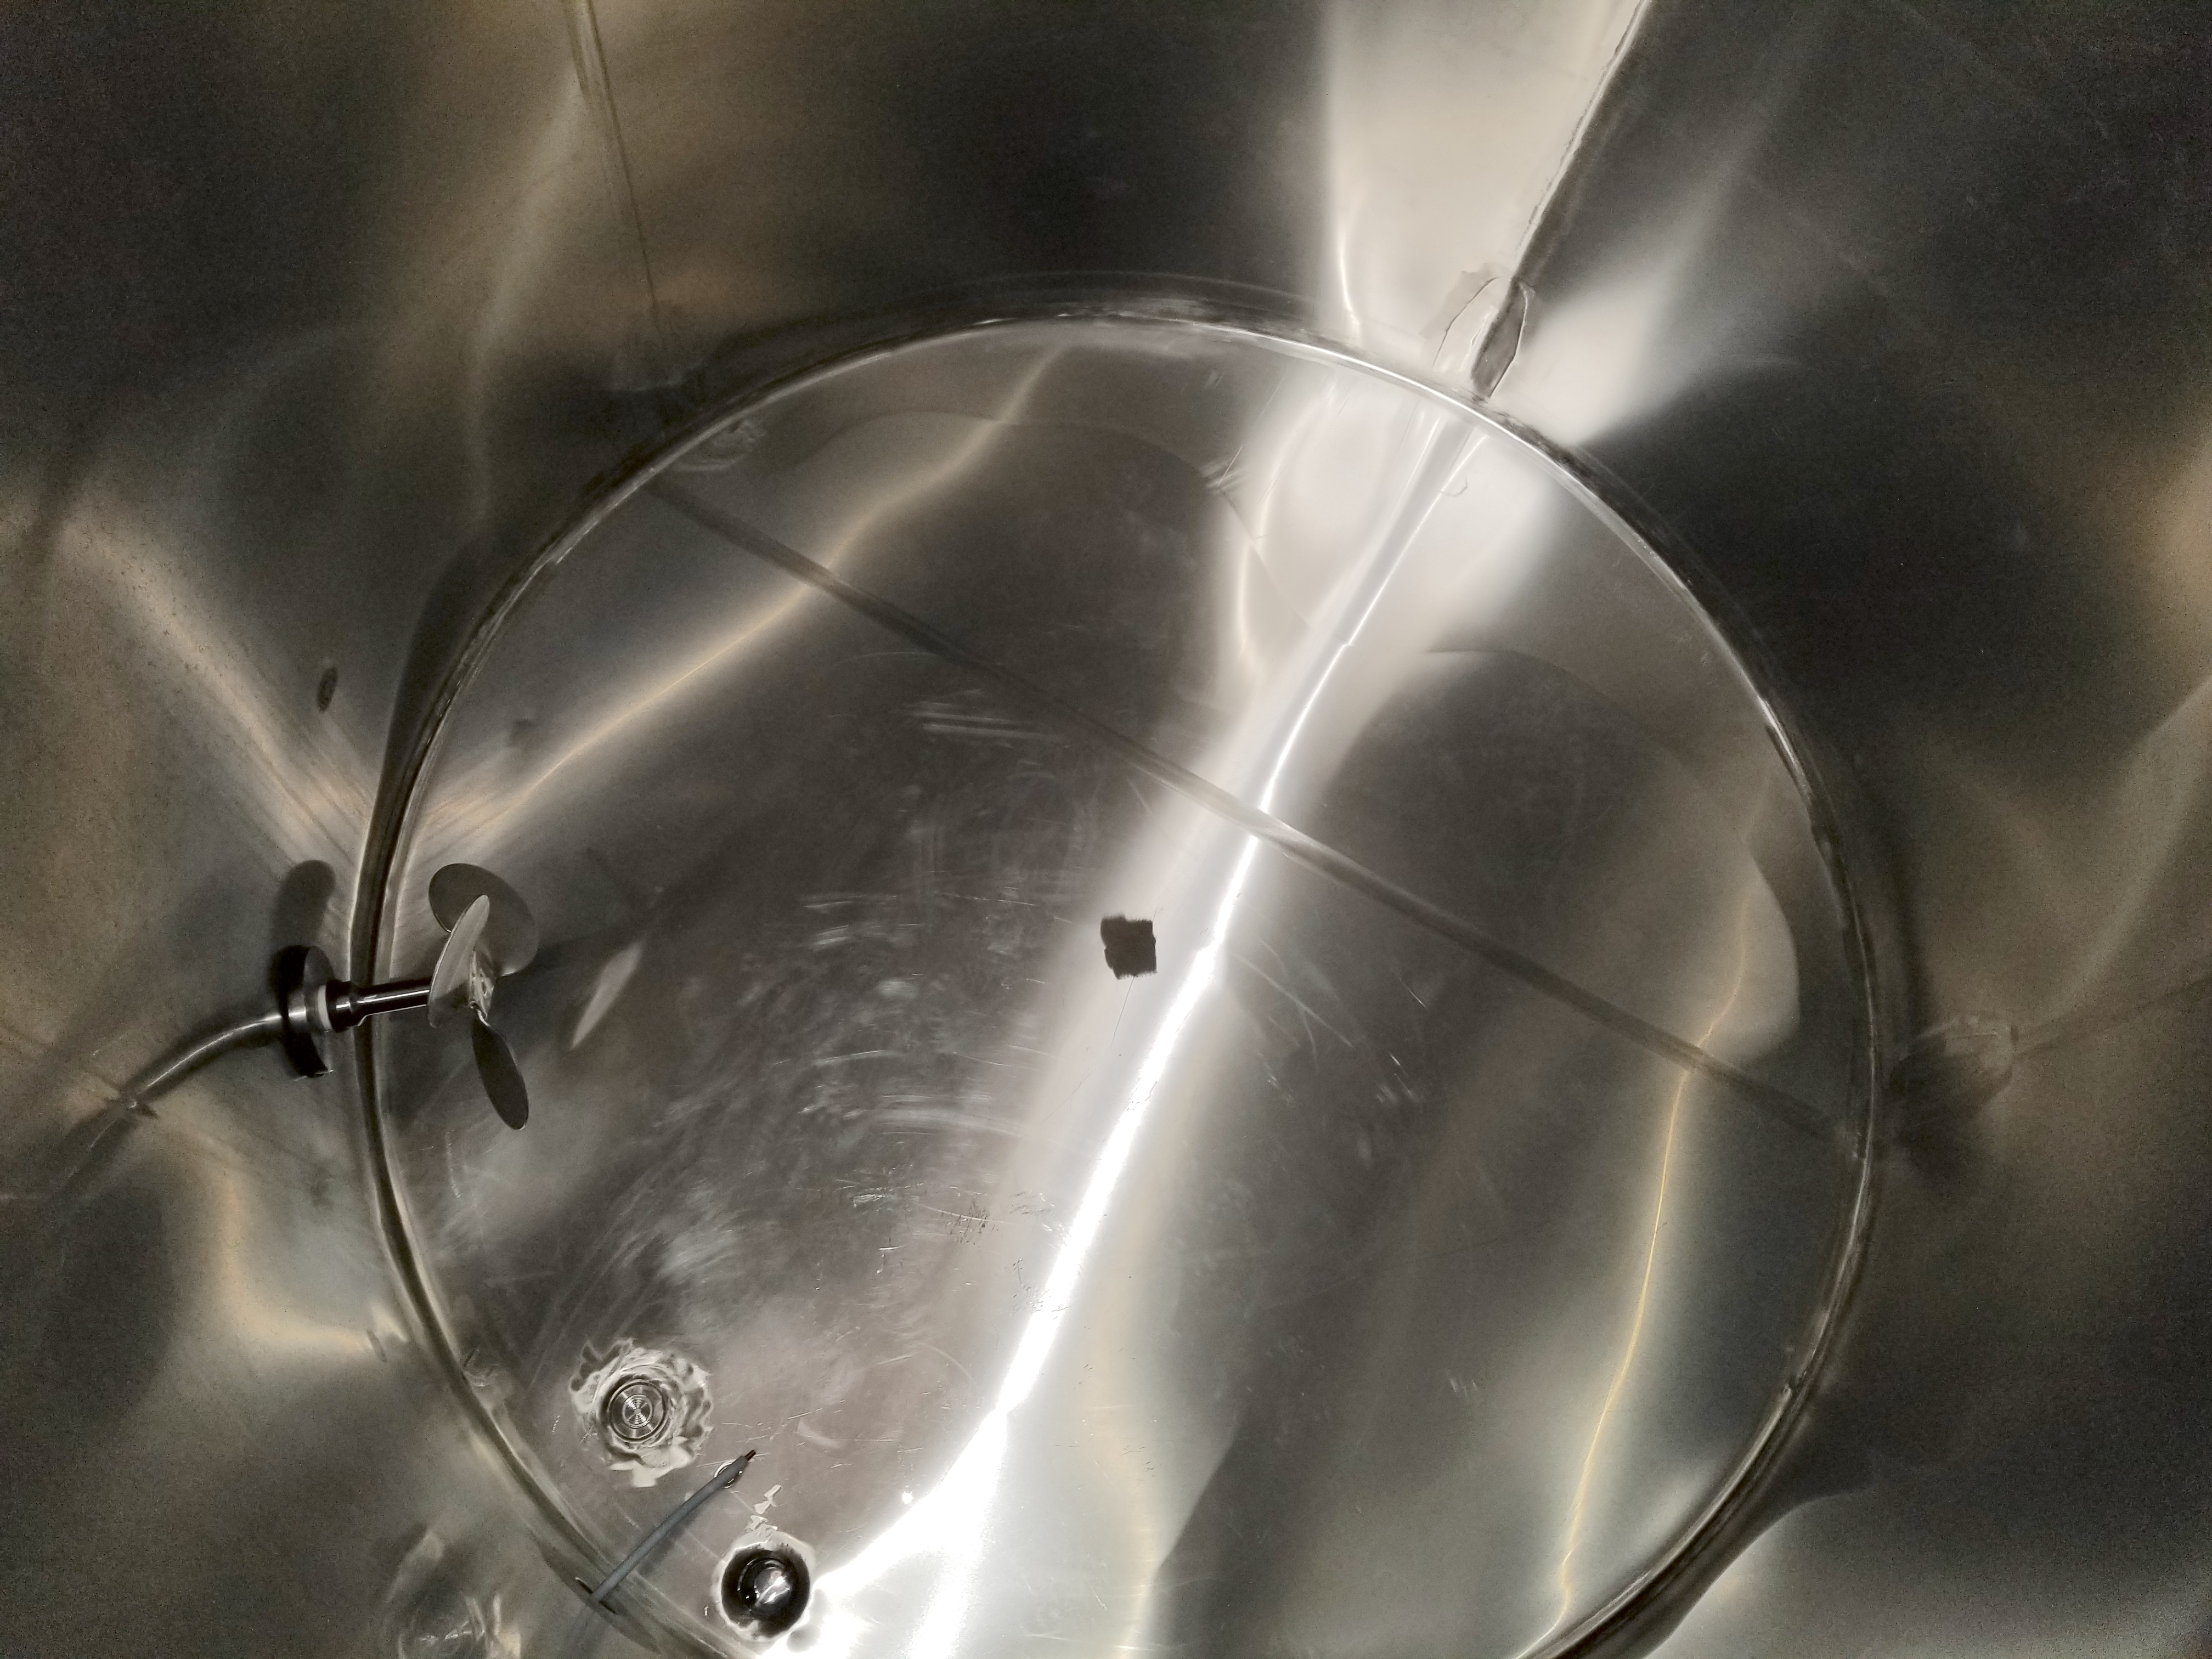 Chem Tank 2,000 Gallon Vertical Mixing Tank - Image 6 of 6